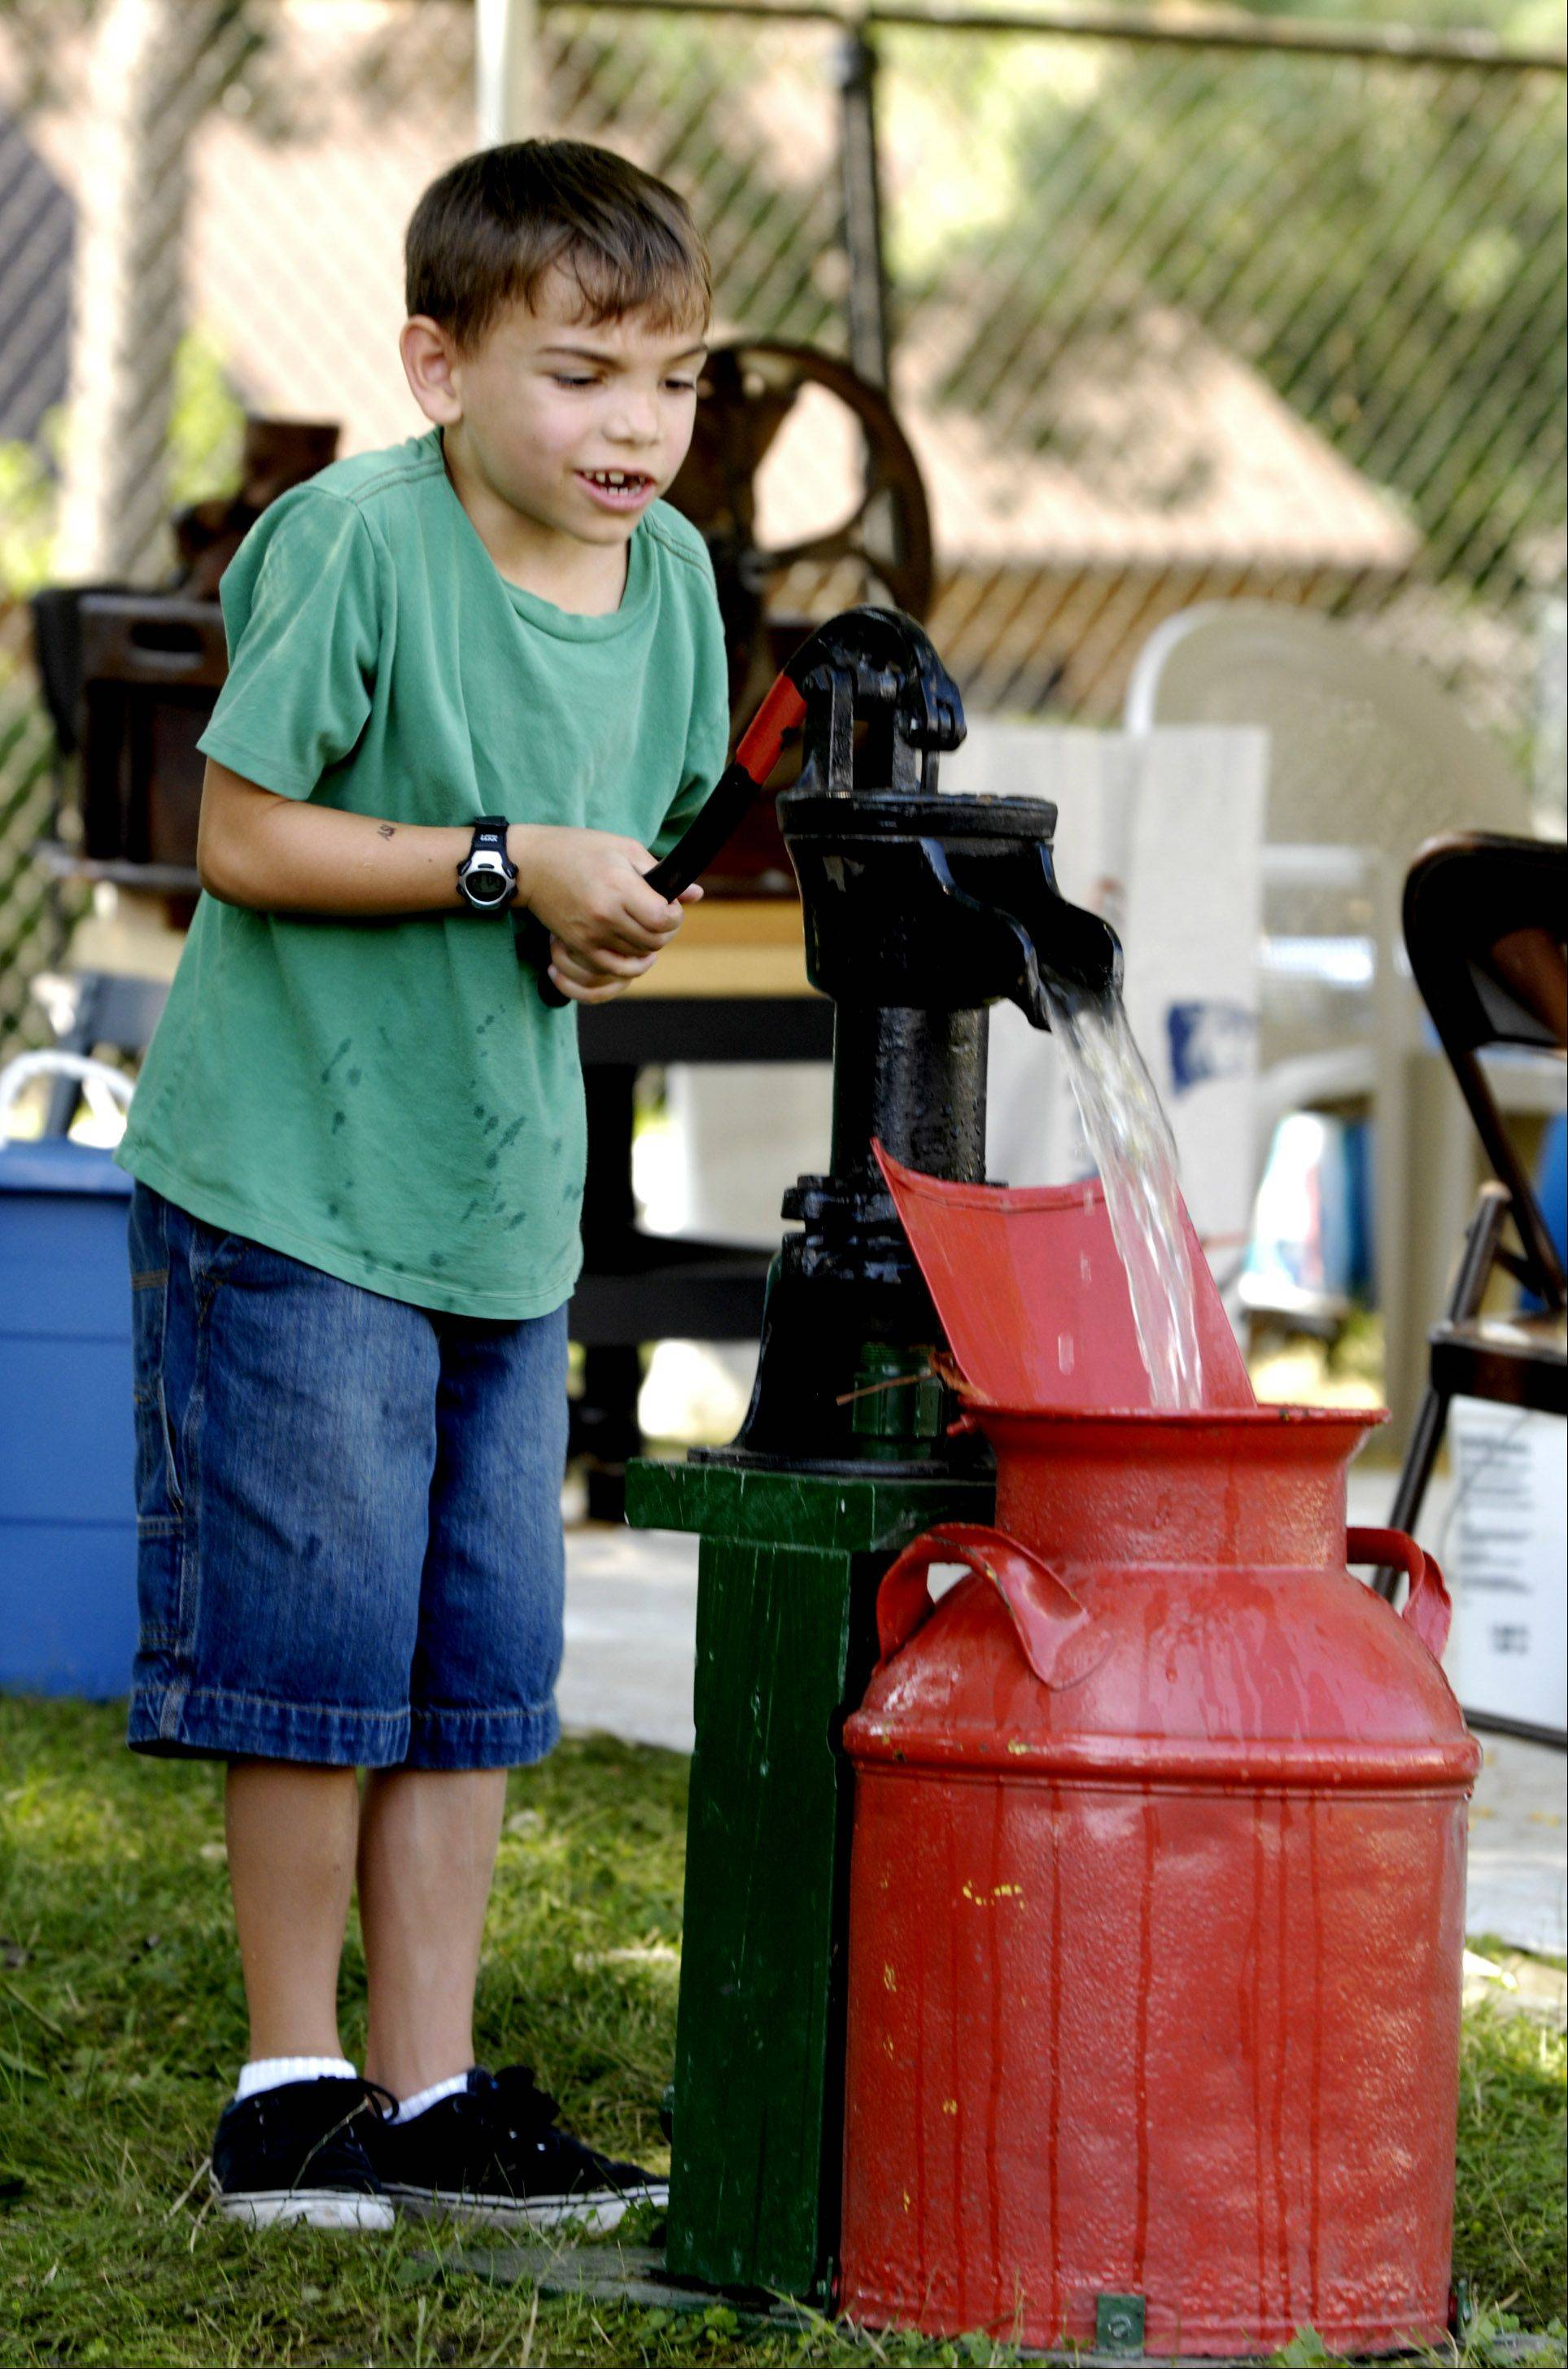 Anthony Tipton, 7 of Carol Stream, tries pumping water.